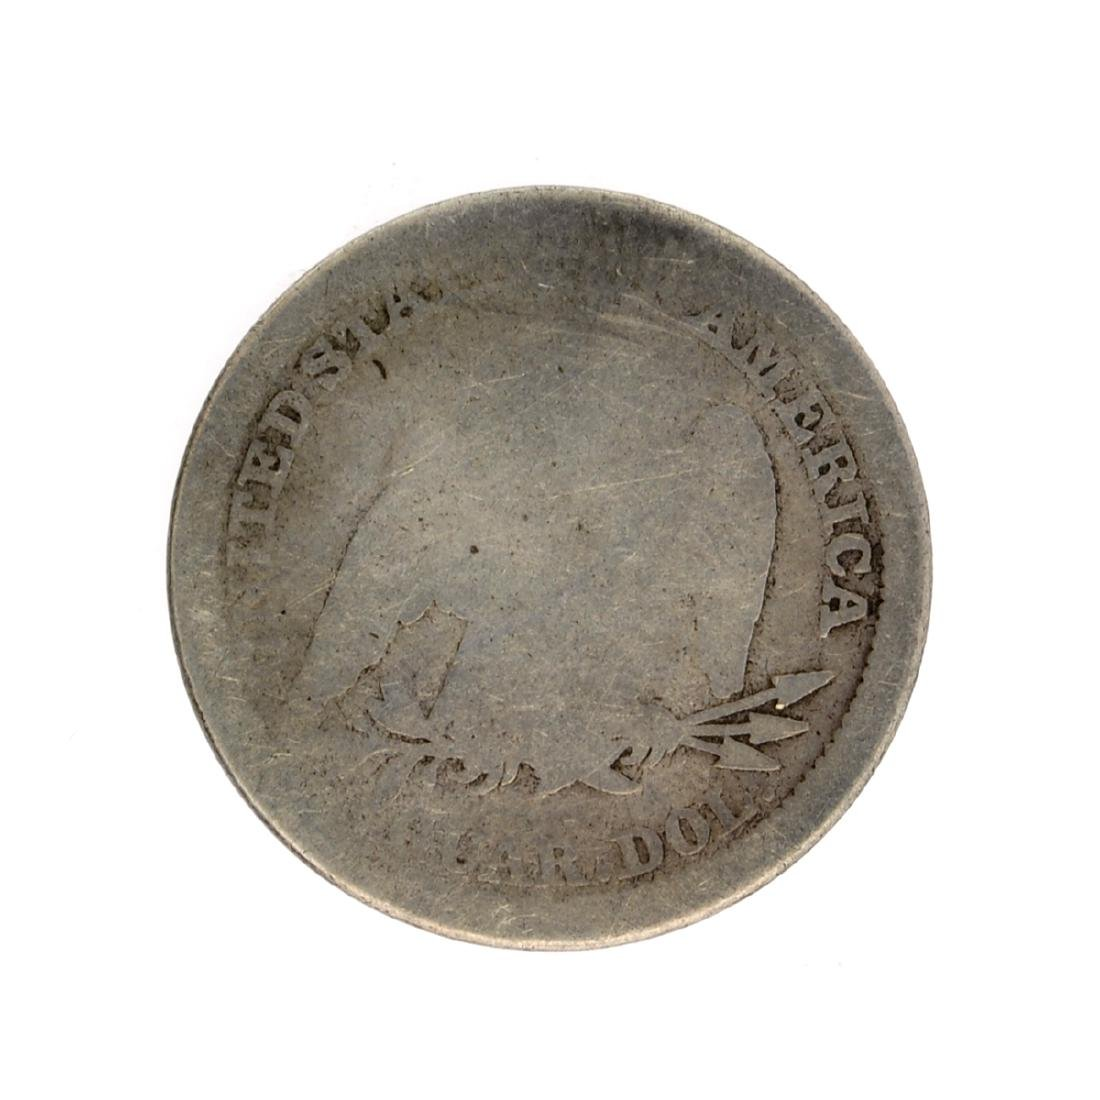 1854 Liberty Seated Arrows At Date Quarter Dollar Coin - 2